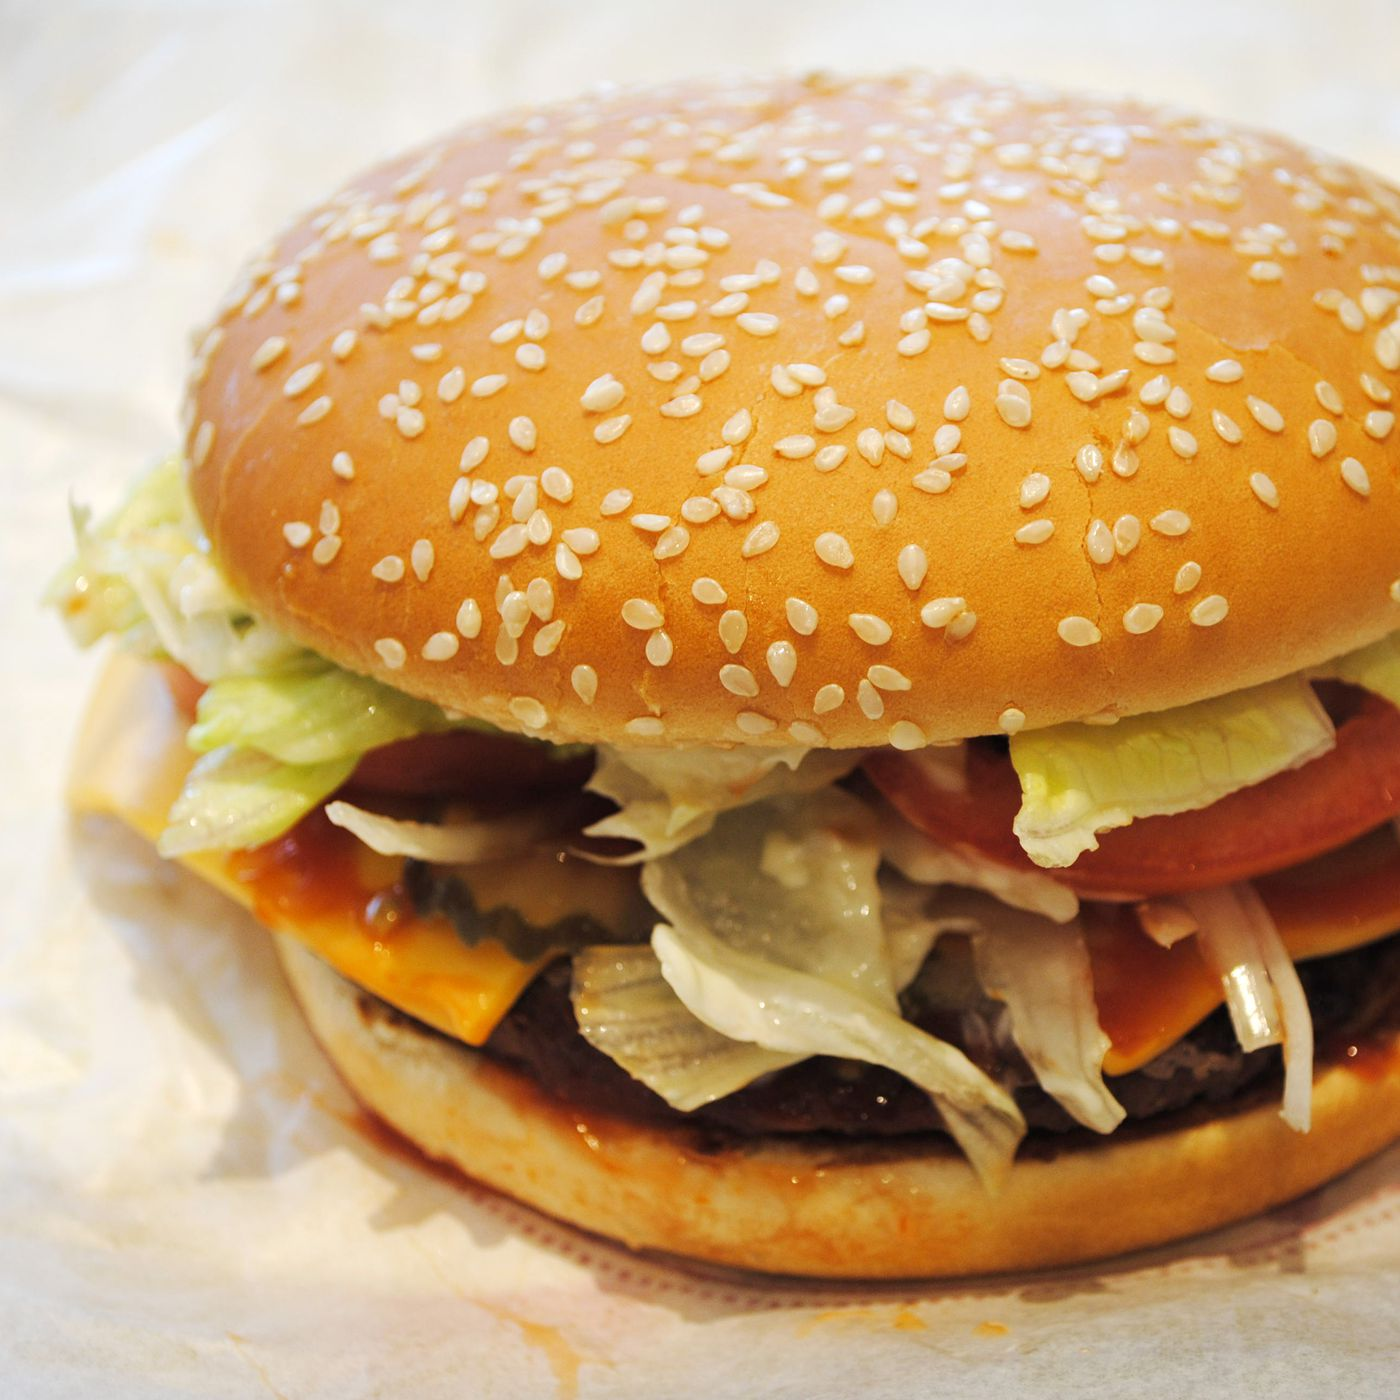 Google Shuts Down Burger Kings Cunning TV Ad